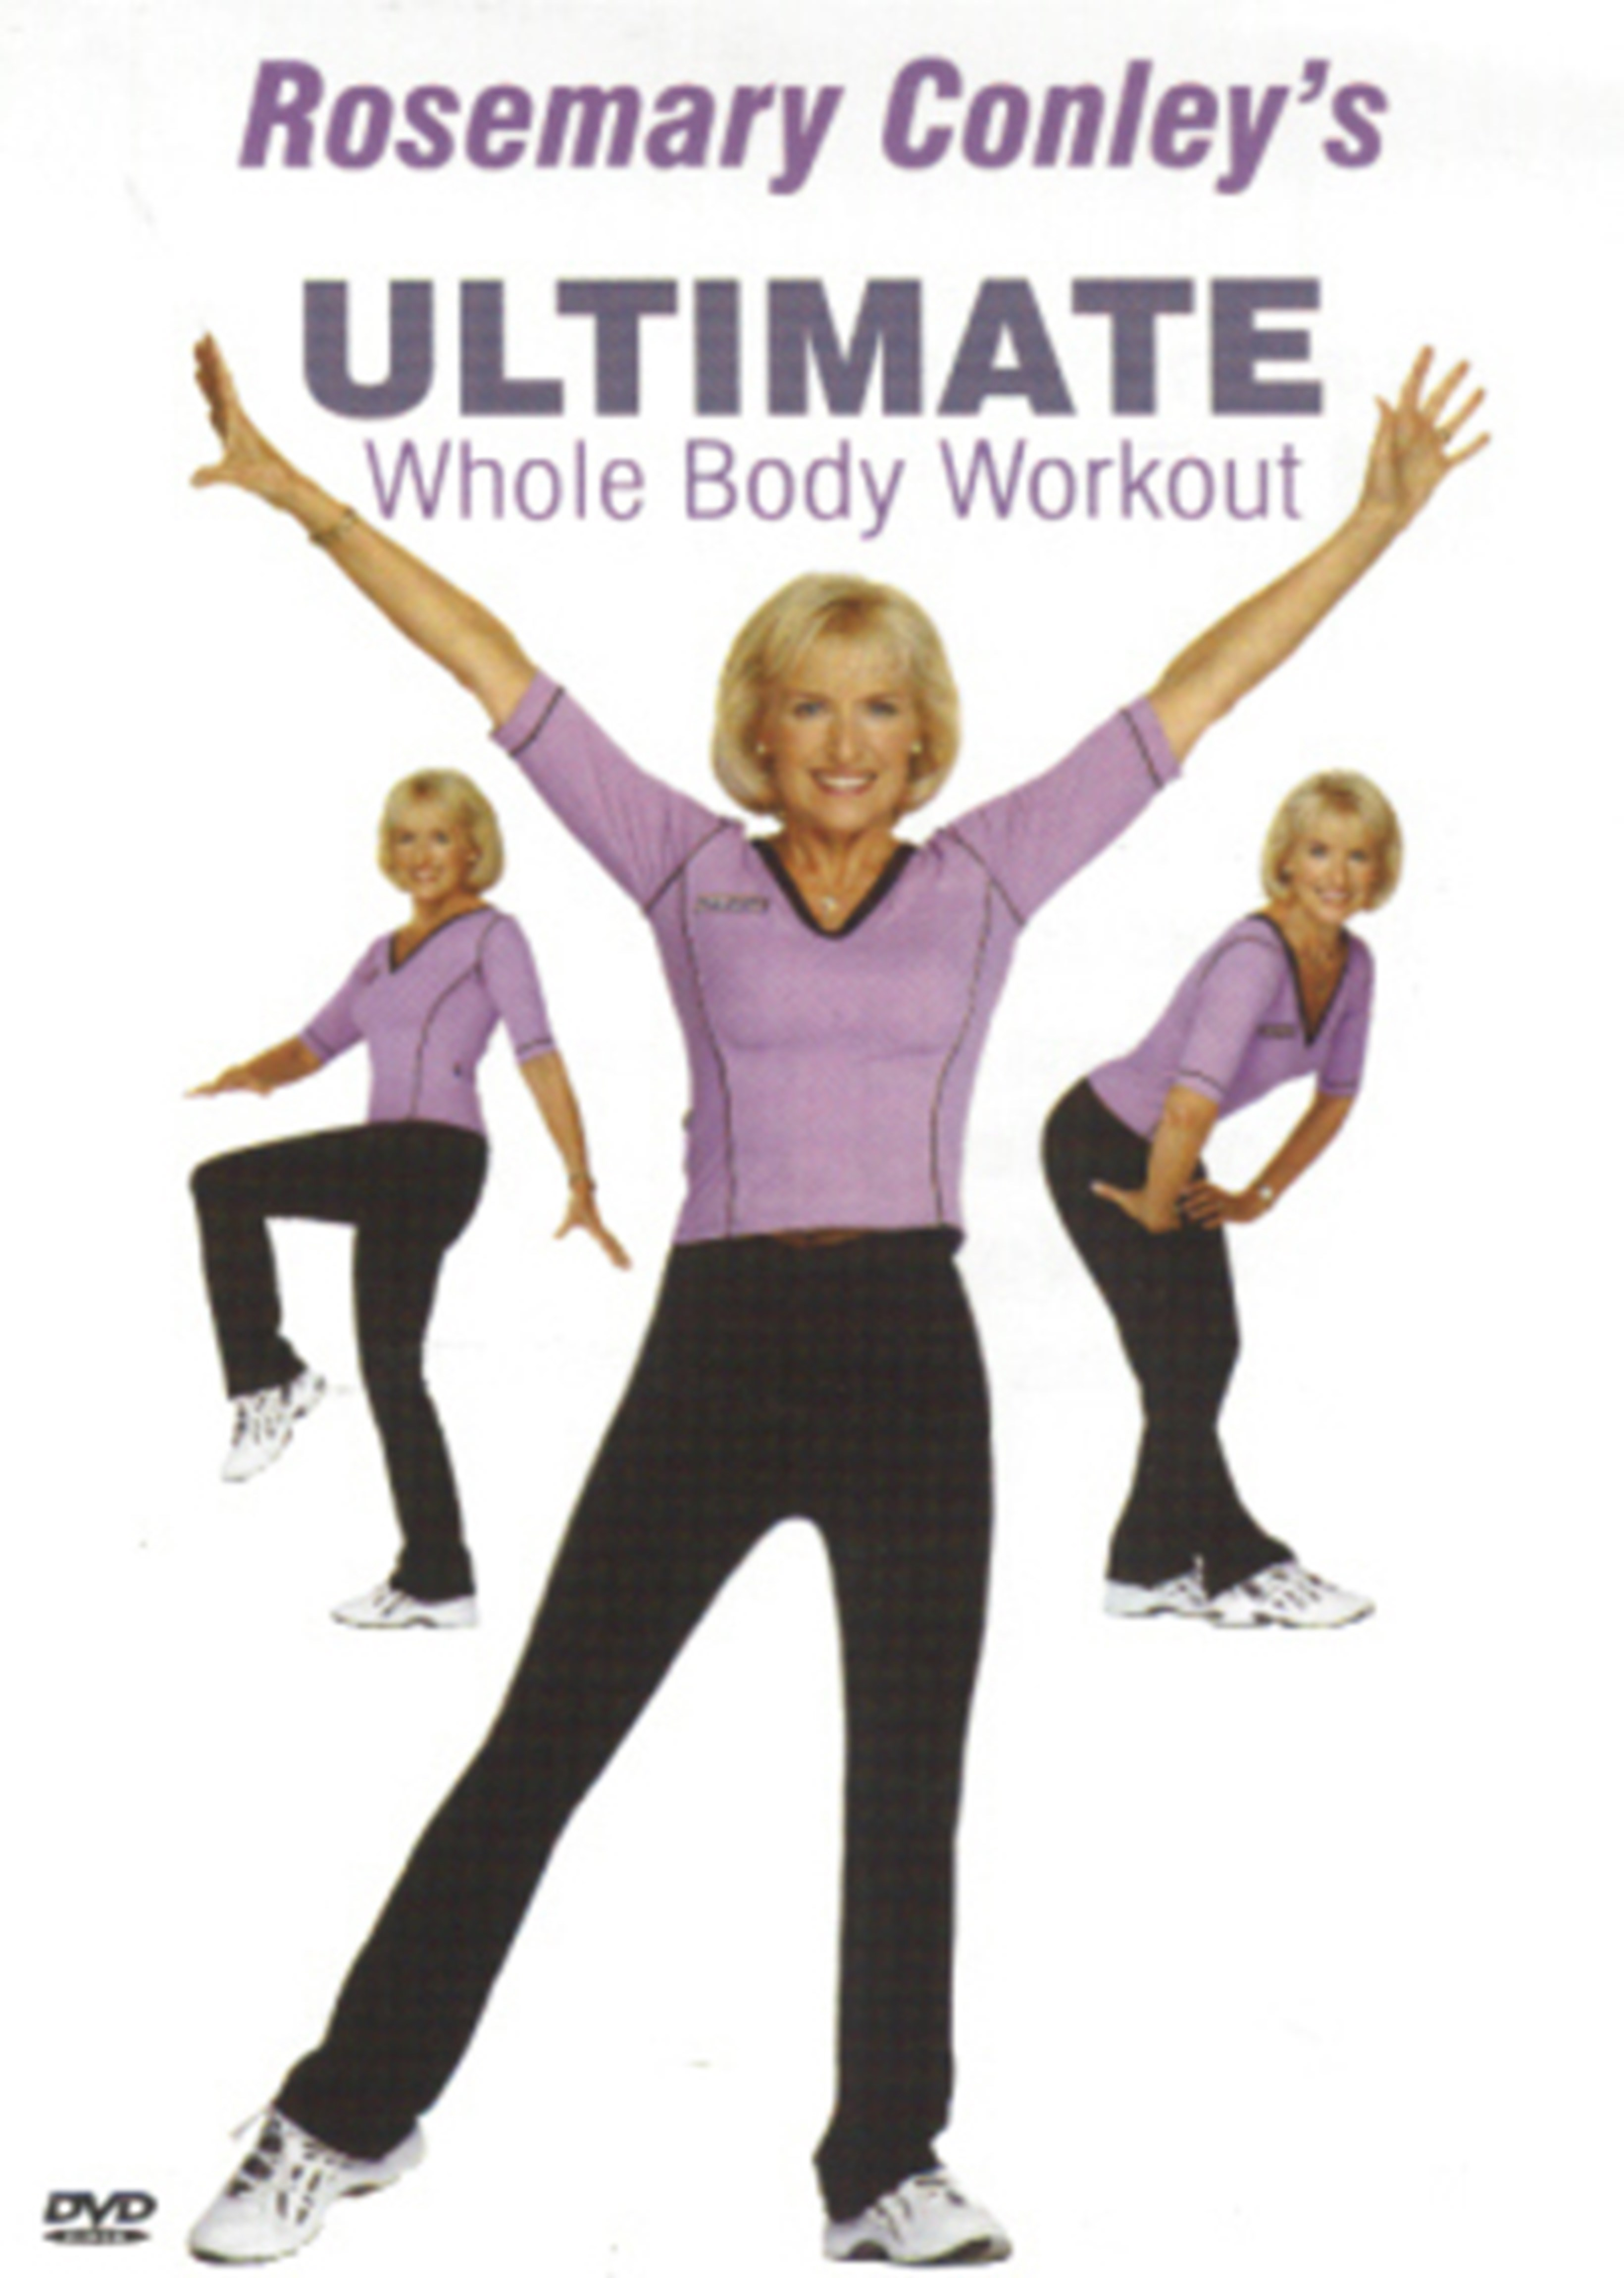 Rosemary Conley: Ultimate Whole Body Workout - 1